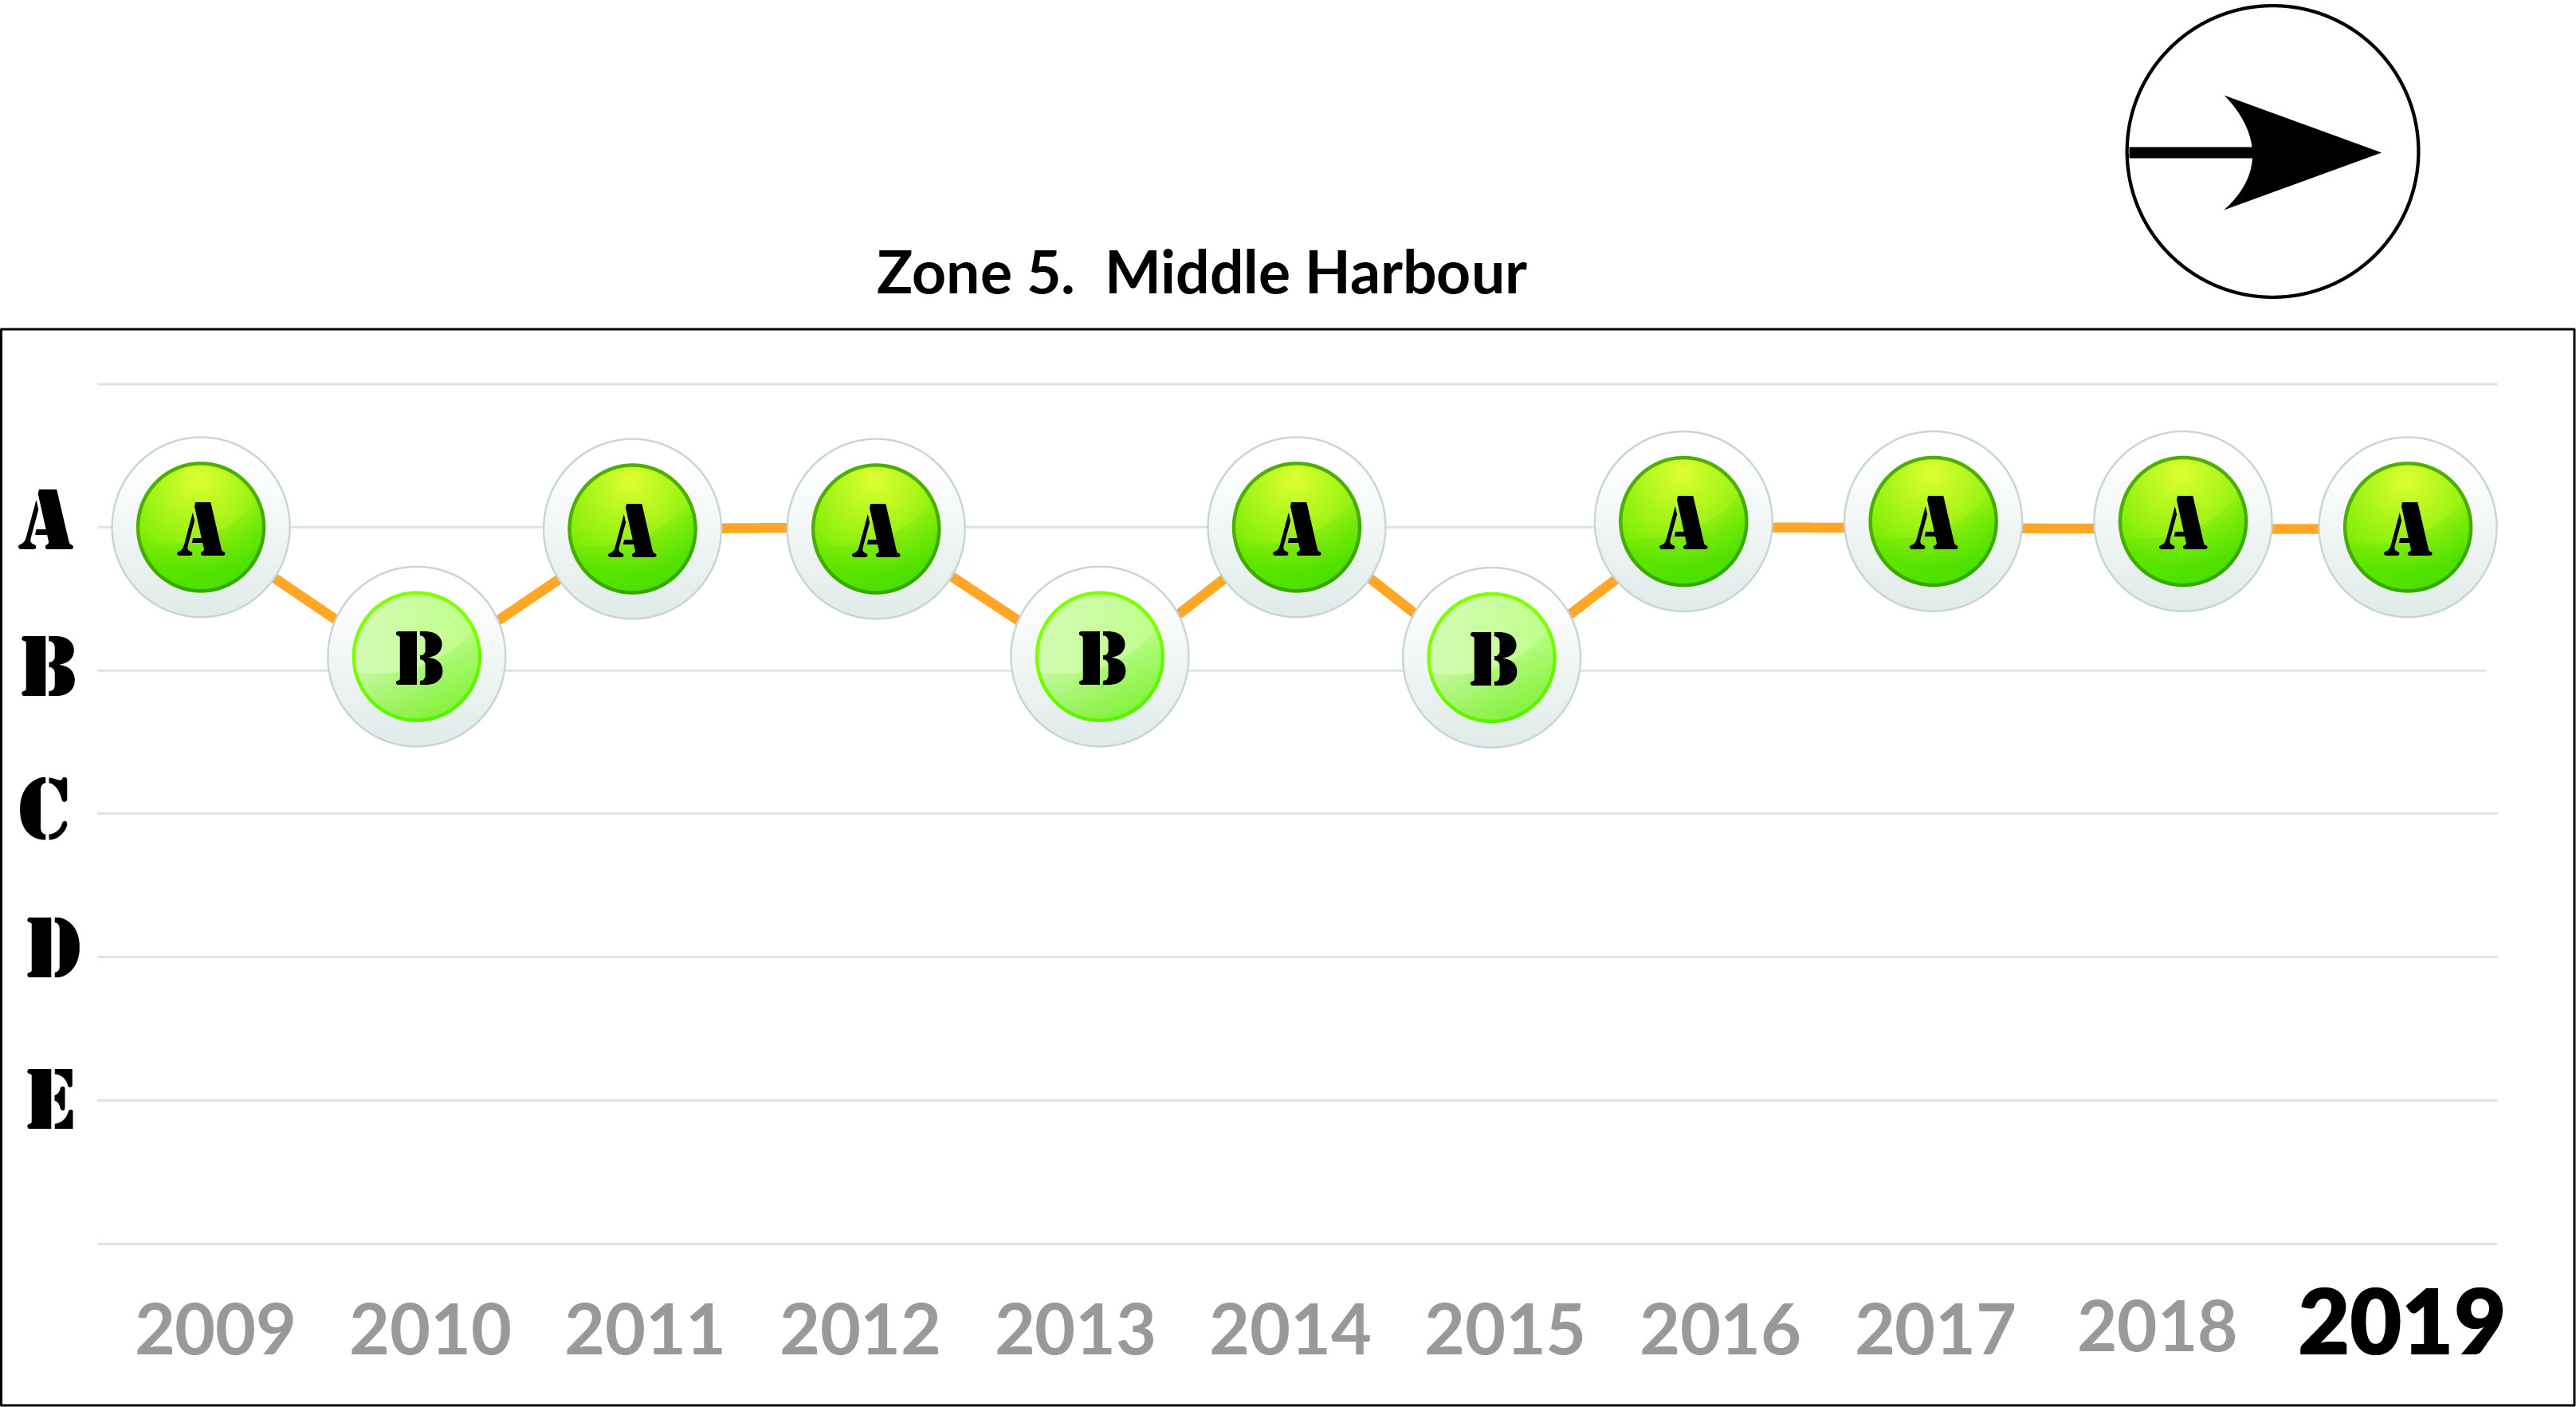 Zone 5 Middle Harbour trends